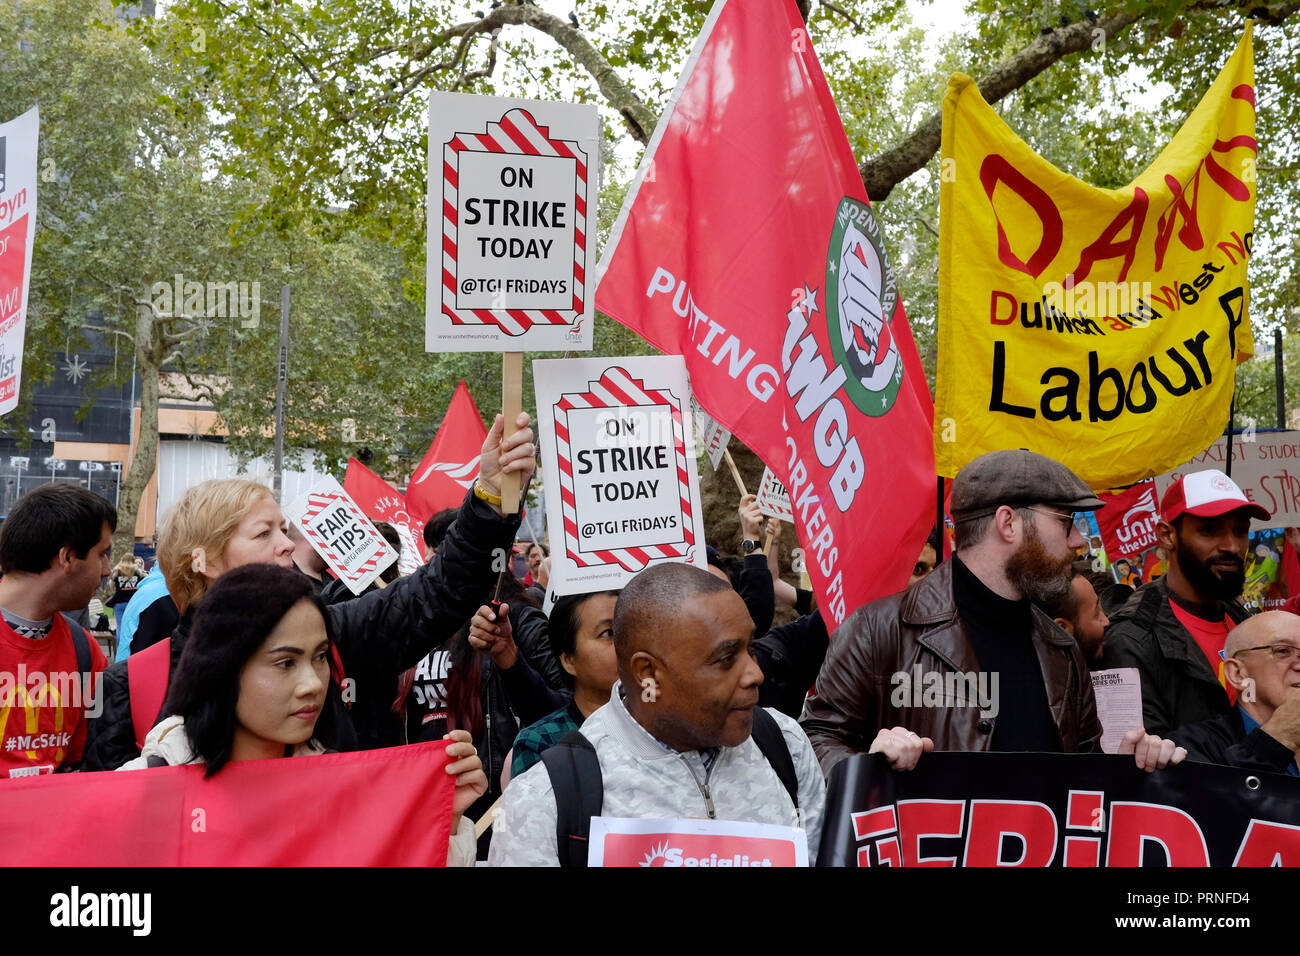 London, UK, 4th October 2018. McDonald's, wetherspoons, TGI Fridays alongside Delivroo and Uber eats riders rally in Leicester Square, demanding better working conditions, and £10 an hour. Credit: Yanice Idir / Alamy Live News Stock Photo